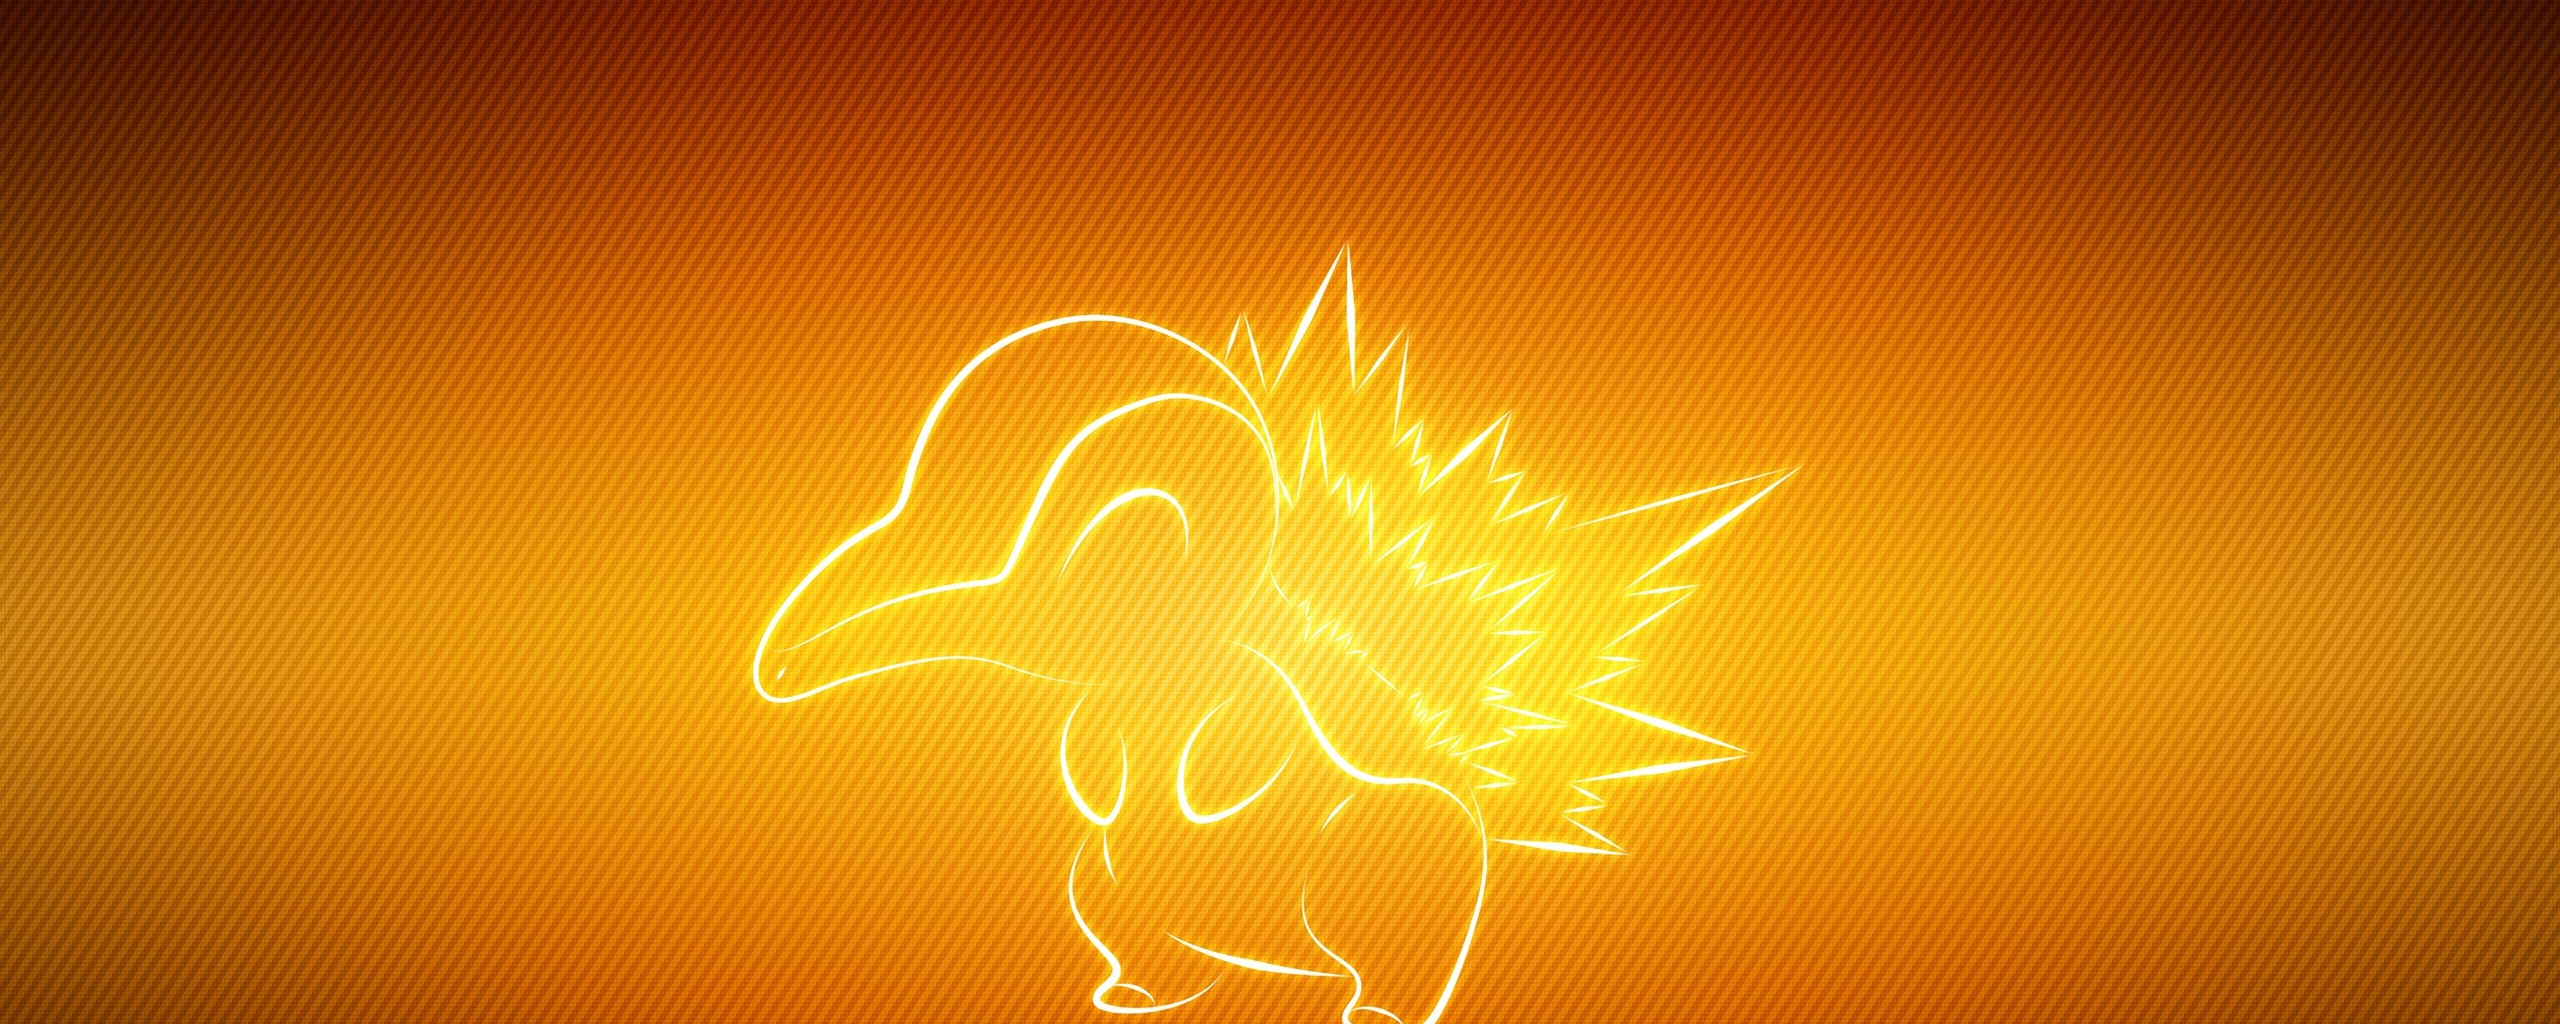 Pokemon Animal Cyndaquil Wallpaper Background Dual Monitor 2560x1024